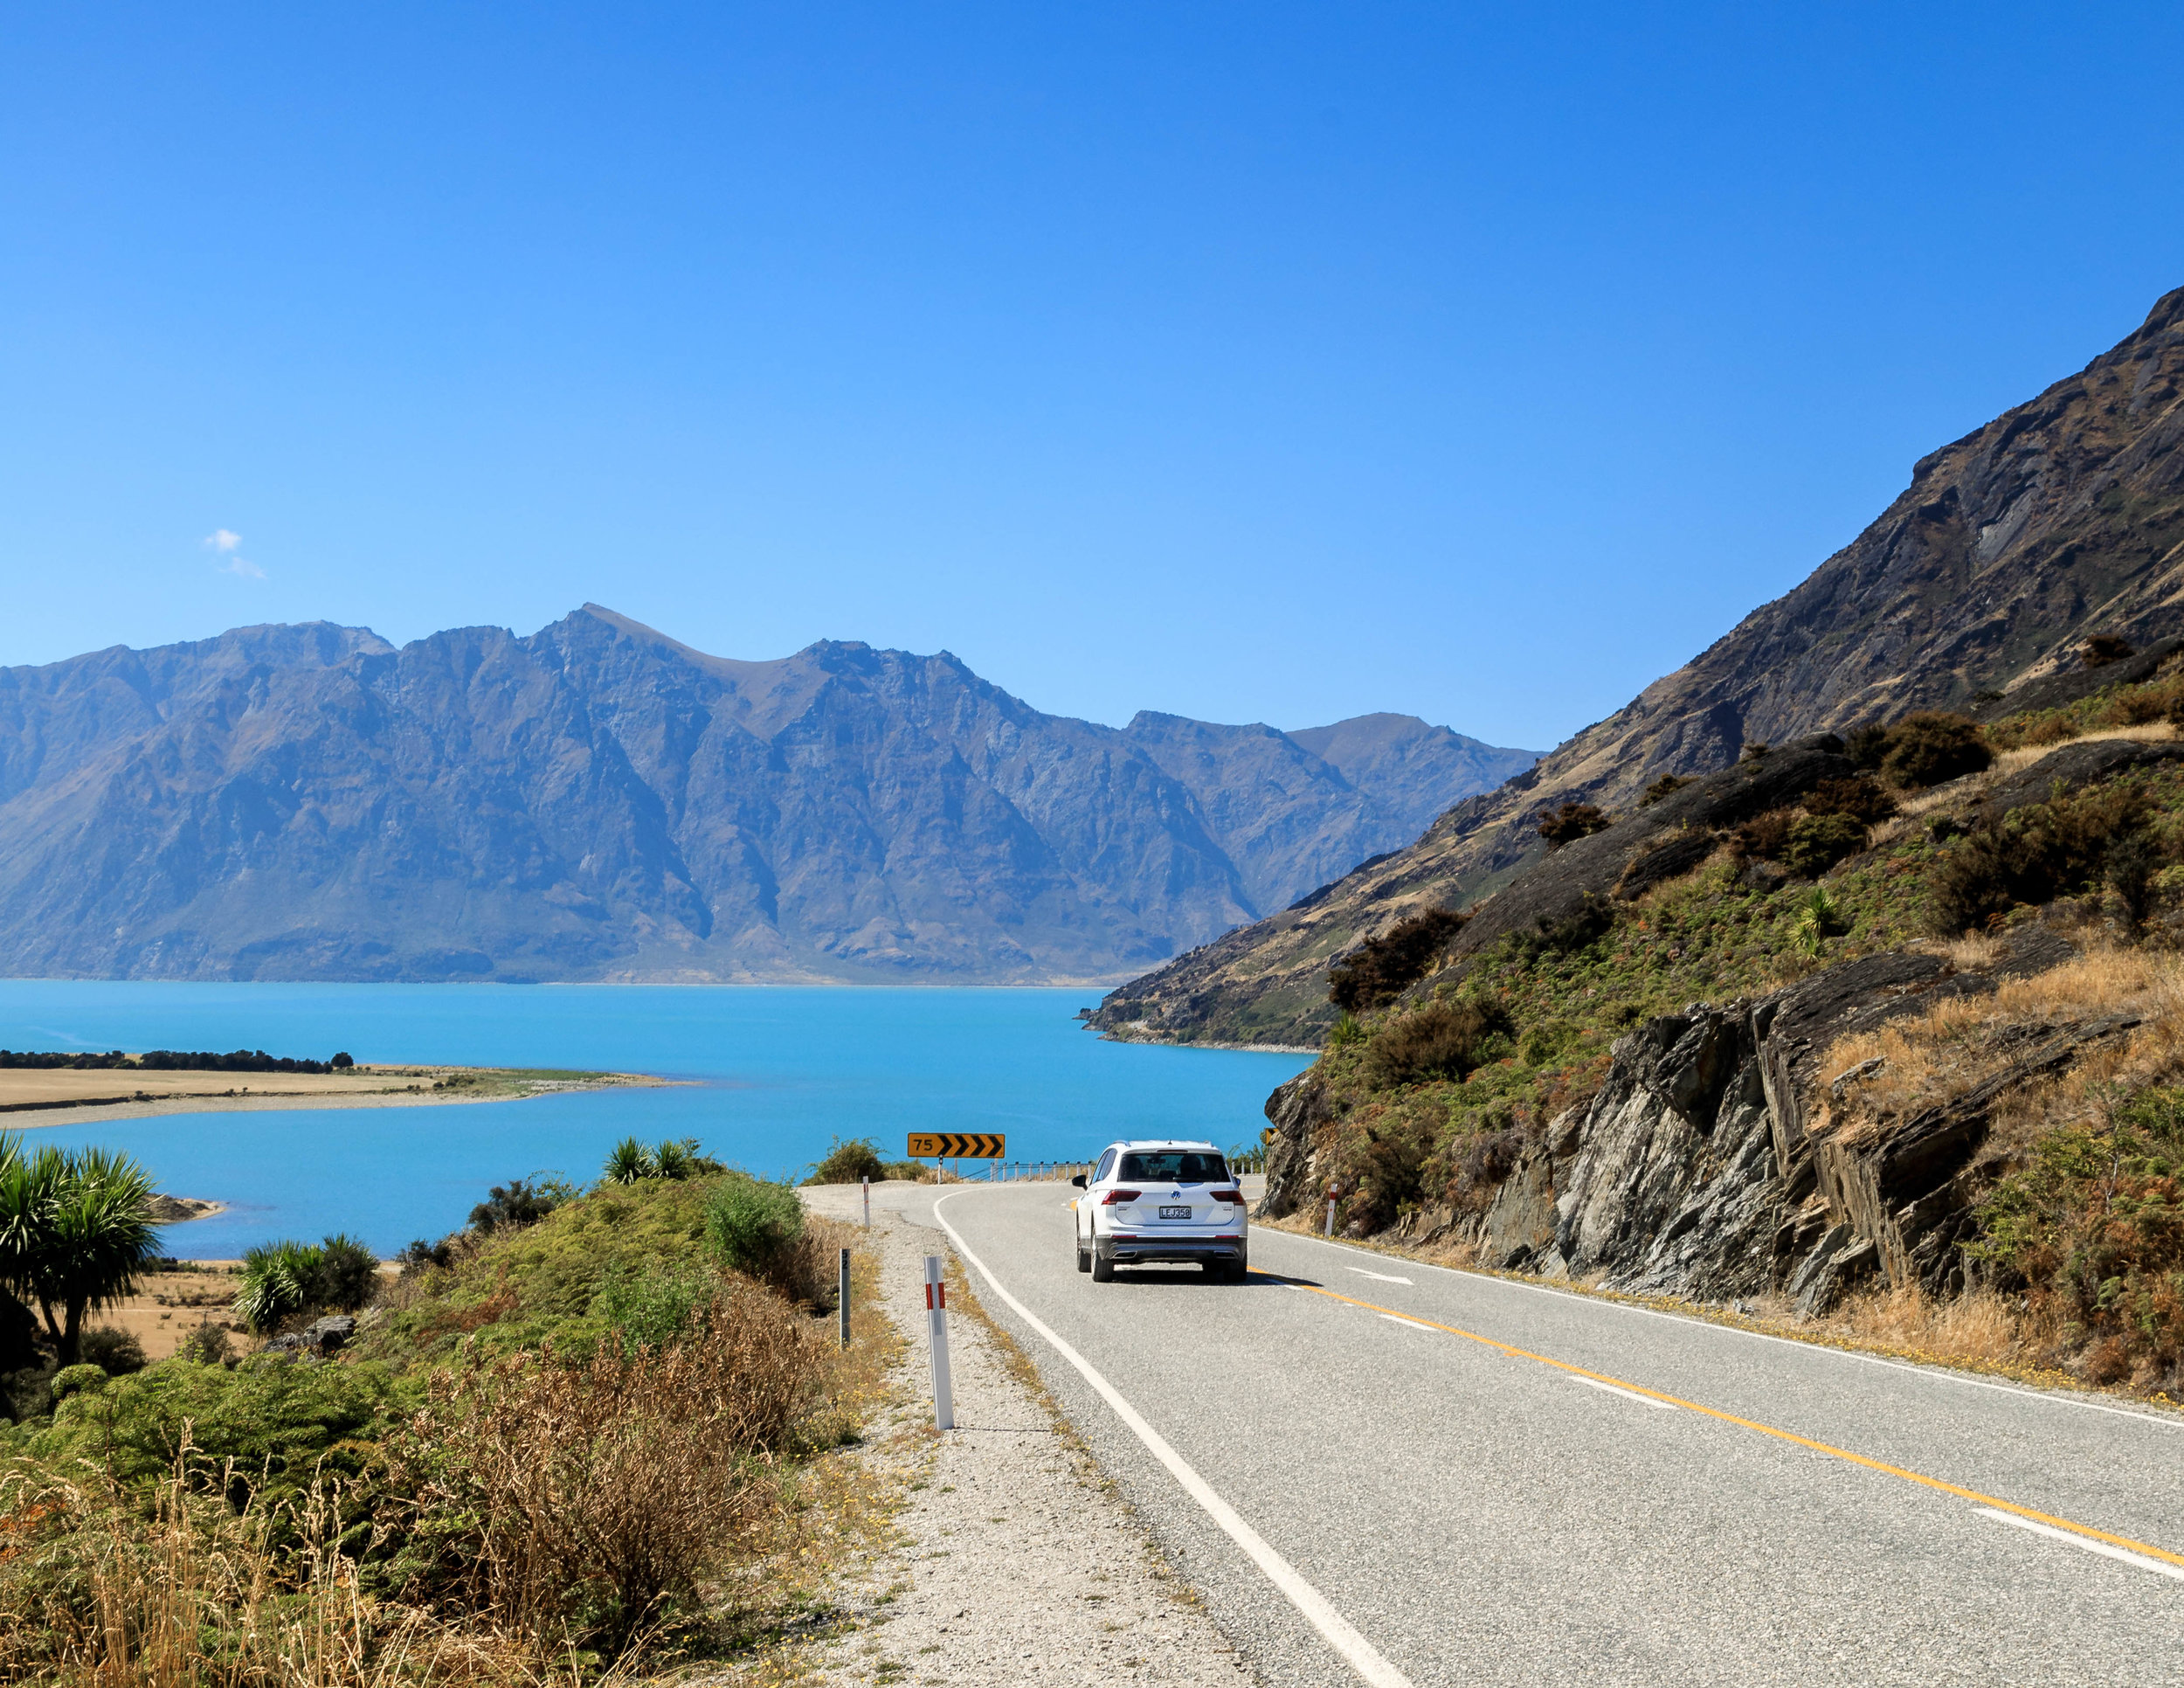 The cost of transportation in New Zealand